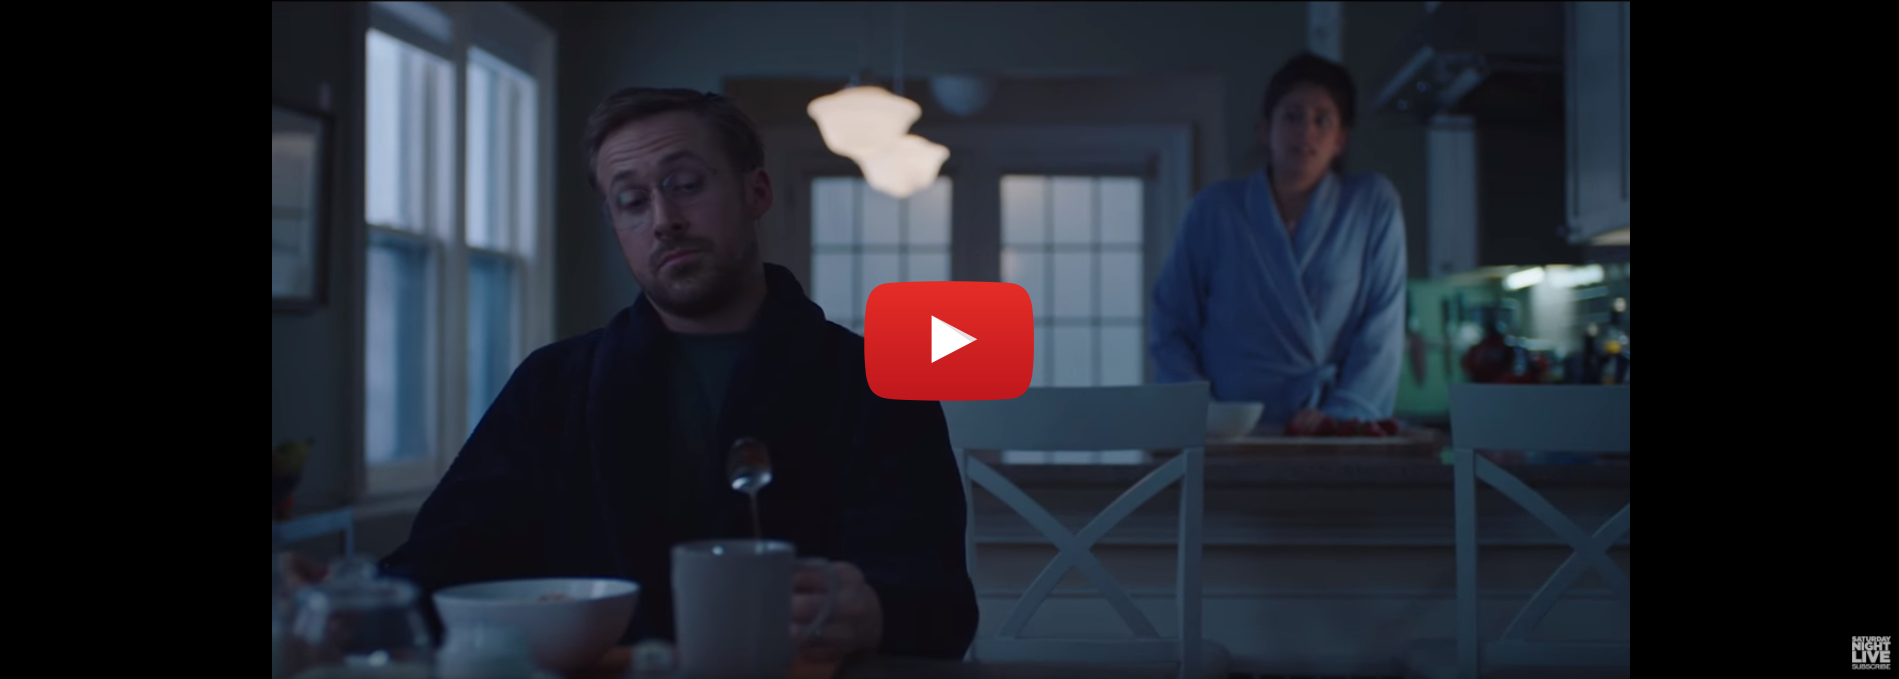 Ryan Gosling Roasts Papyrus Font (VIDEO); Papyrus Creator Strikes Back!